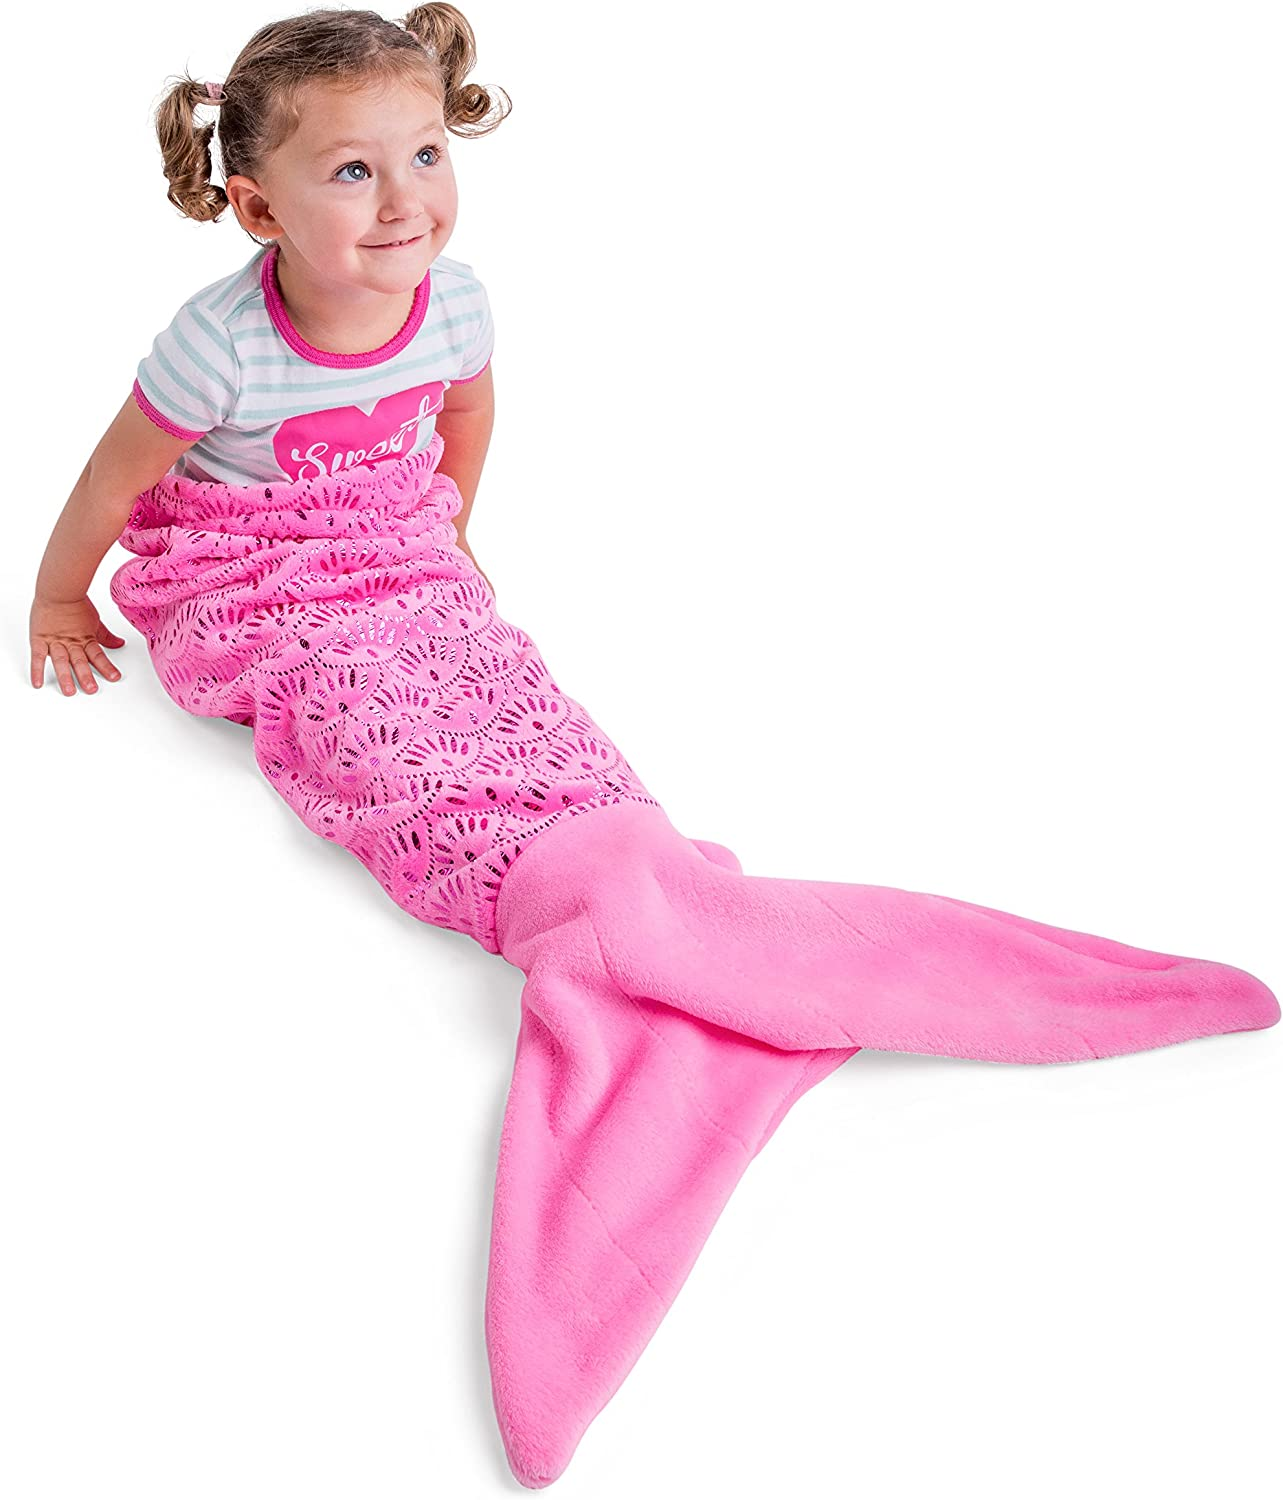 Vital Tiger New sales Pink Mermaid Tail Blanket Soft – Kids Silky outlet for